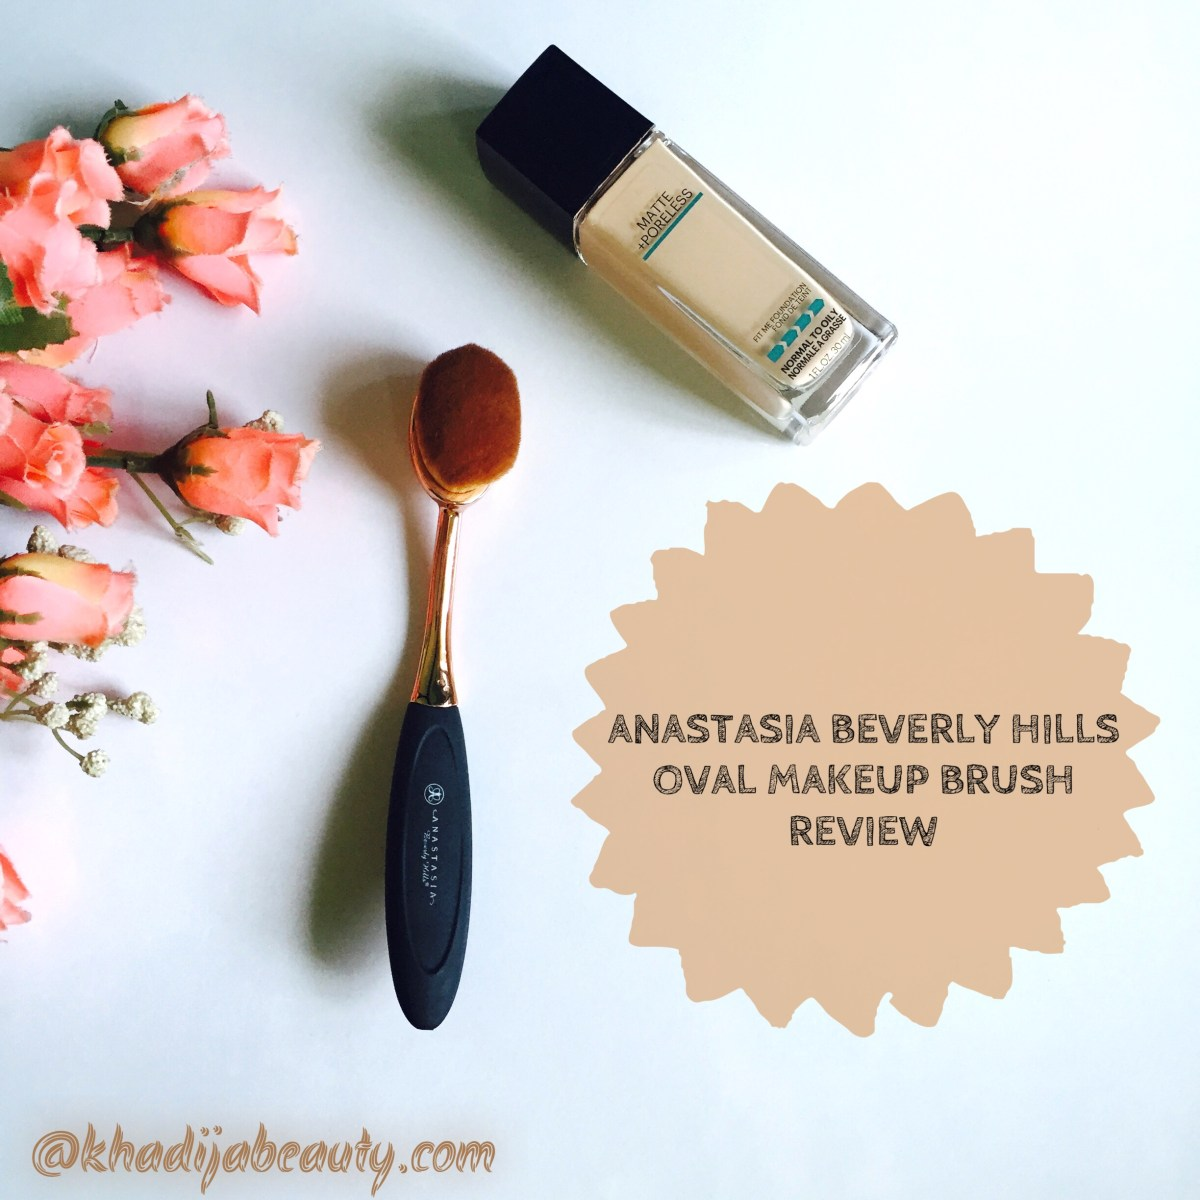 ANASTASIA BEVERLY HILLS OVAL MAKEUP BRUSH- REVIEW